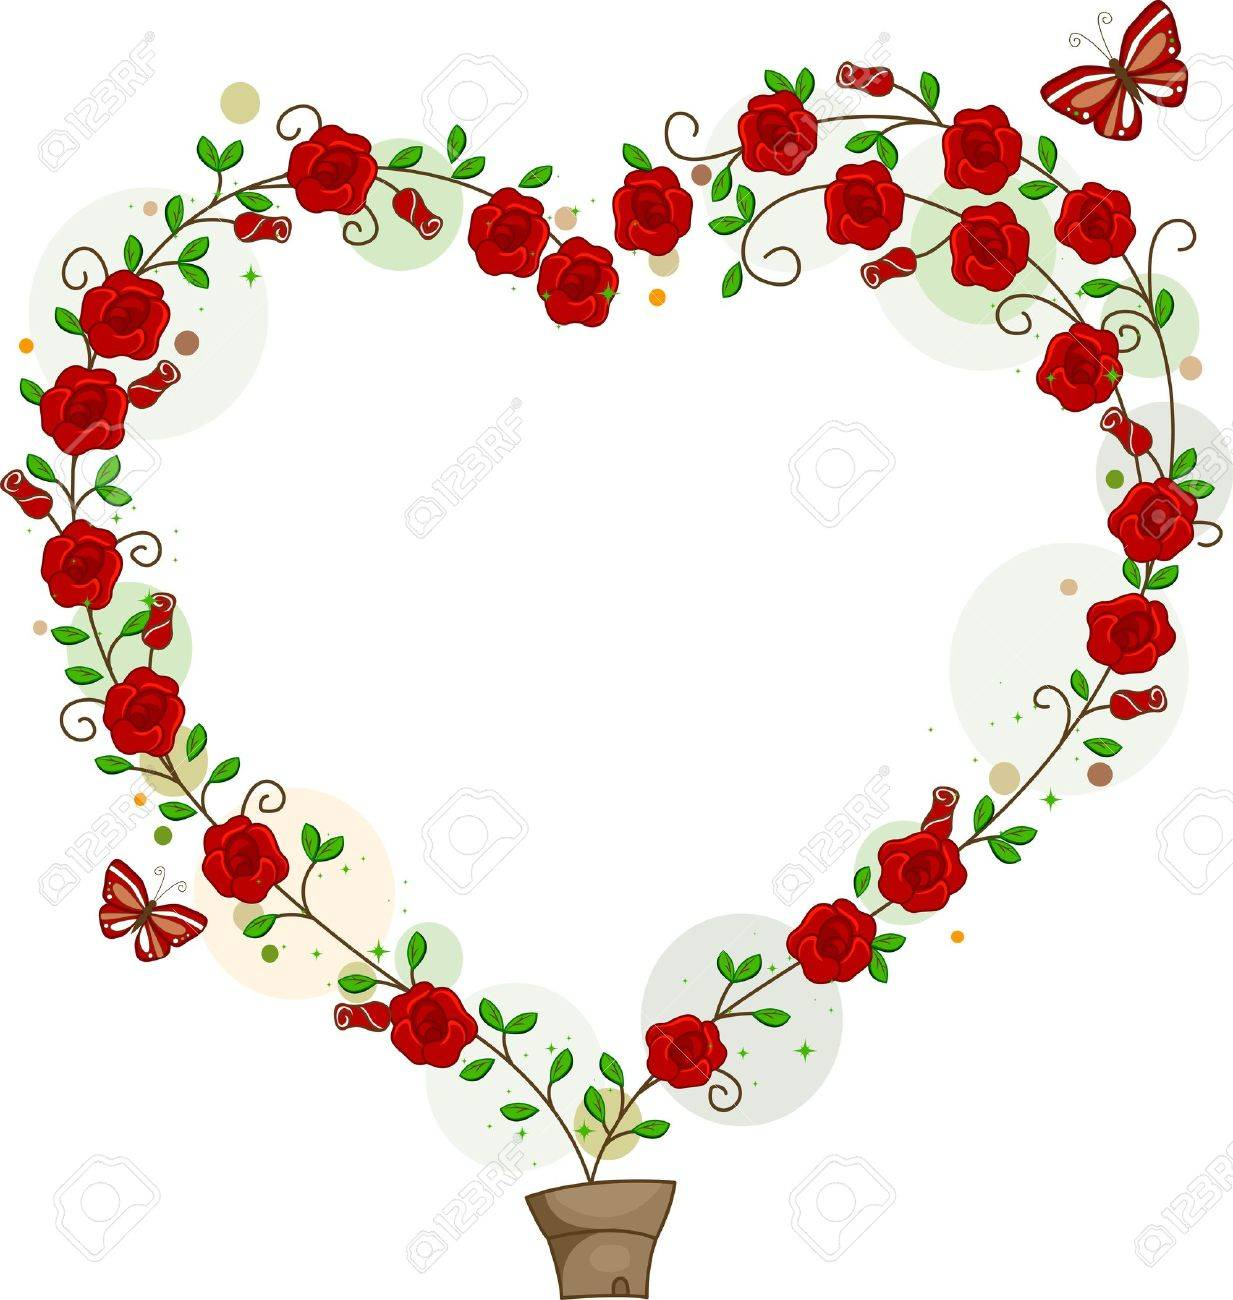 hearts and flowers stock photos images. royalty free hearts and, Beautiful flower